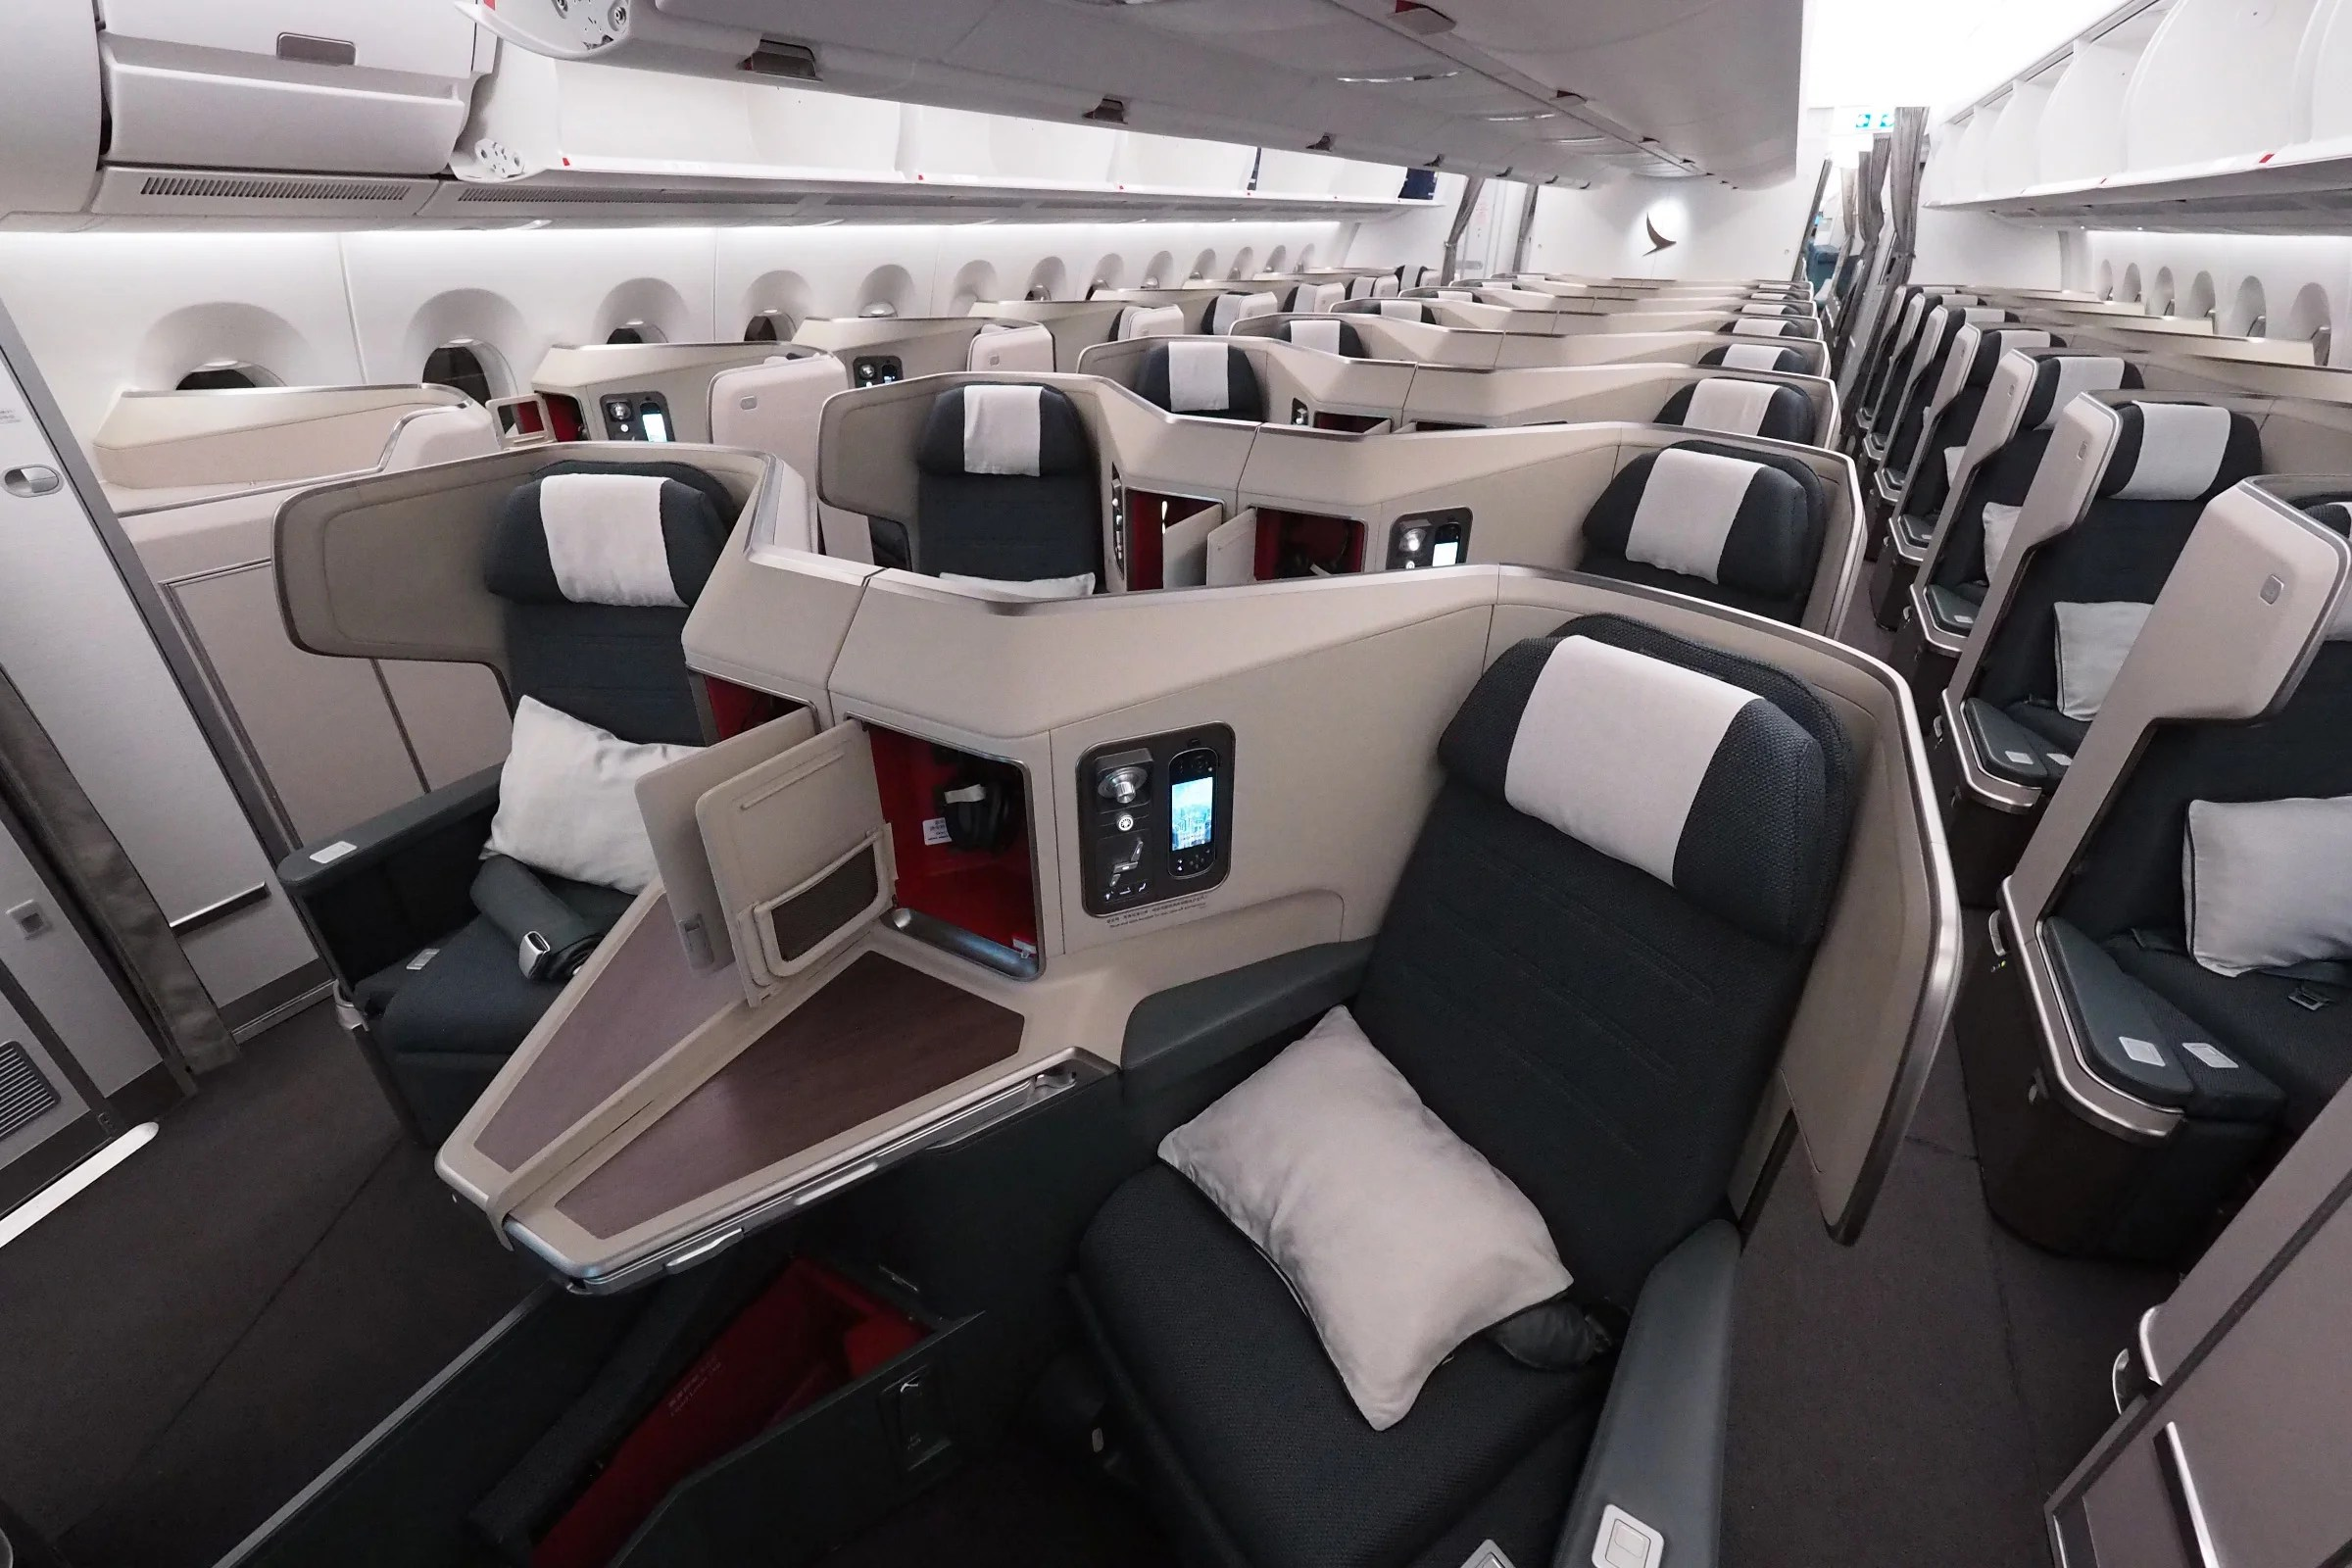 Jal mileage bank cathay pacific airways / cathay dragon.